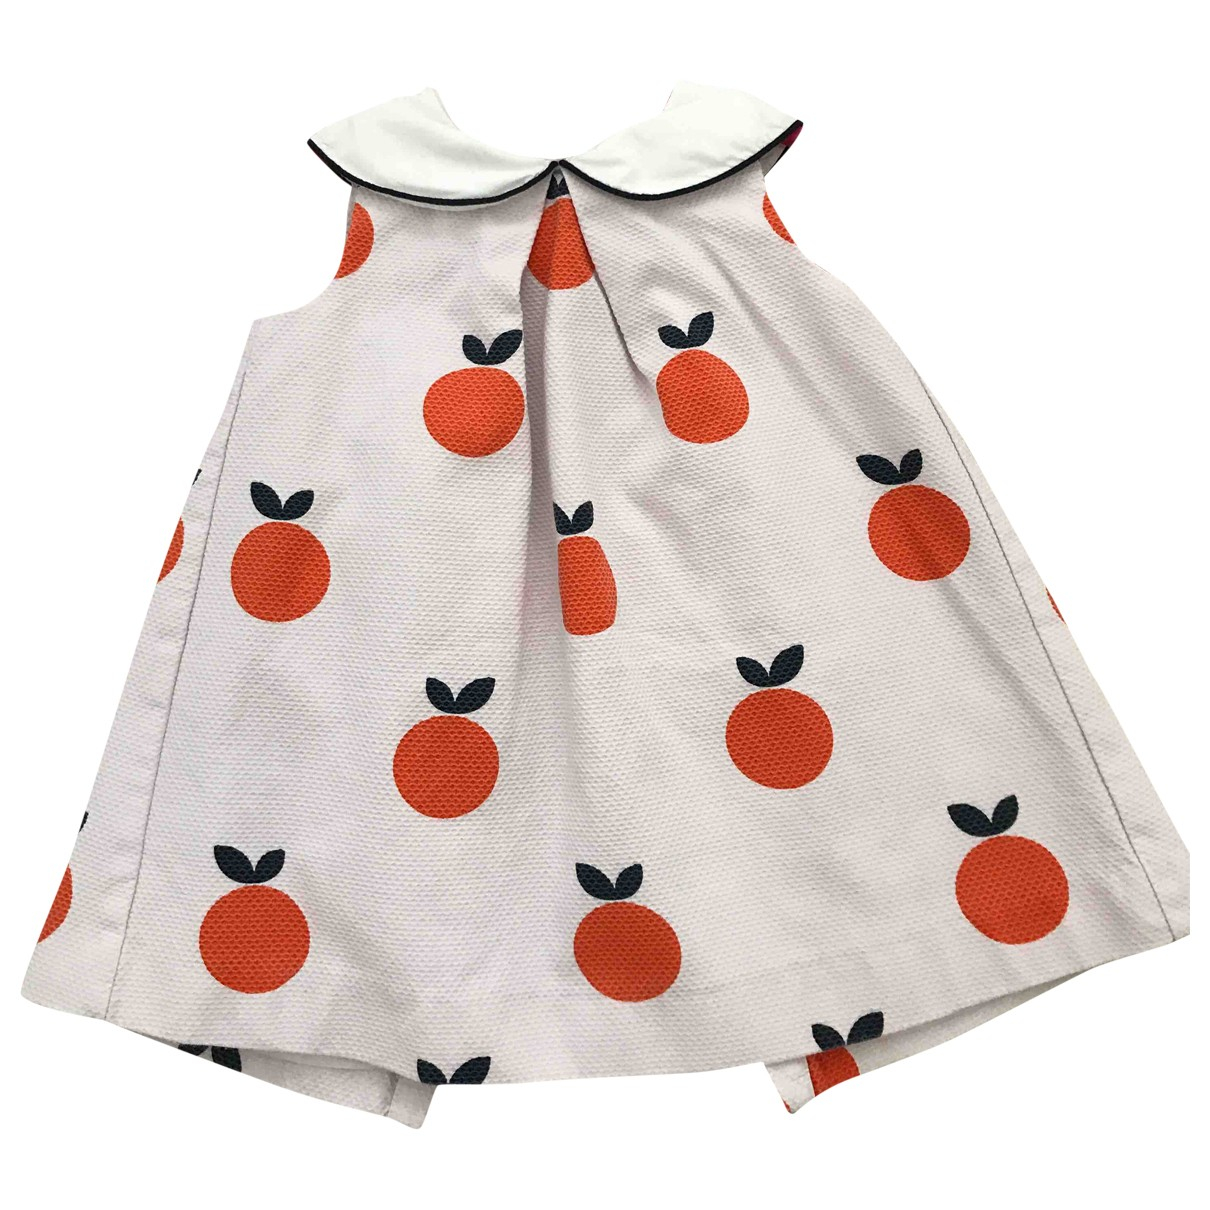 Jacadi \N Pink Cotton dress for Kids 18 months - up to 81cm FR